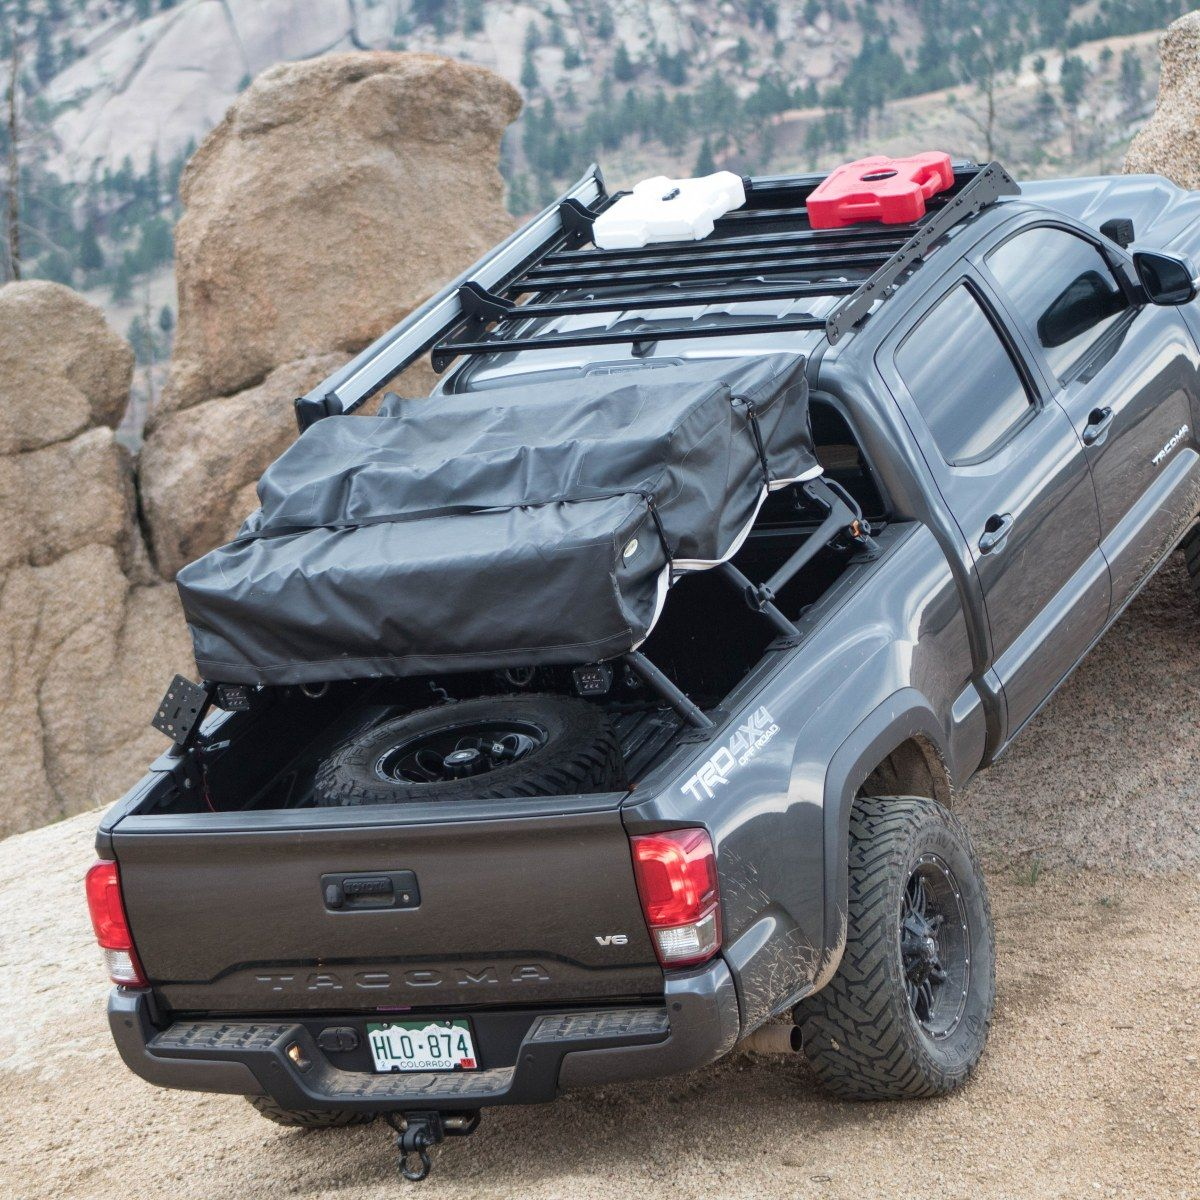 2005 Toyota Tacoma Mid Height Bed Rack In 2020 Toyota Tacoma Toyota Tacoma Roof Rack Tacoma Bed Rack